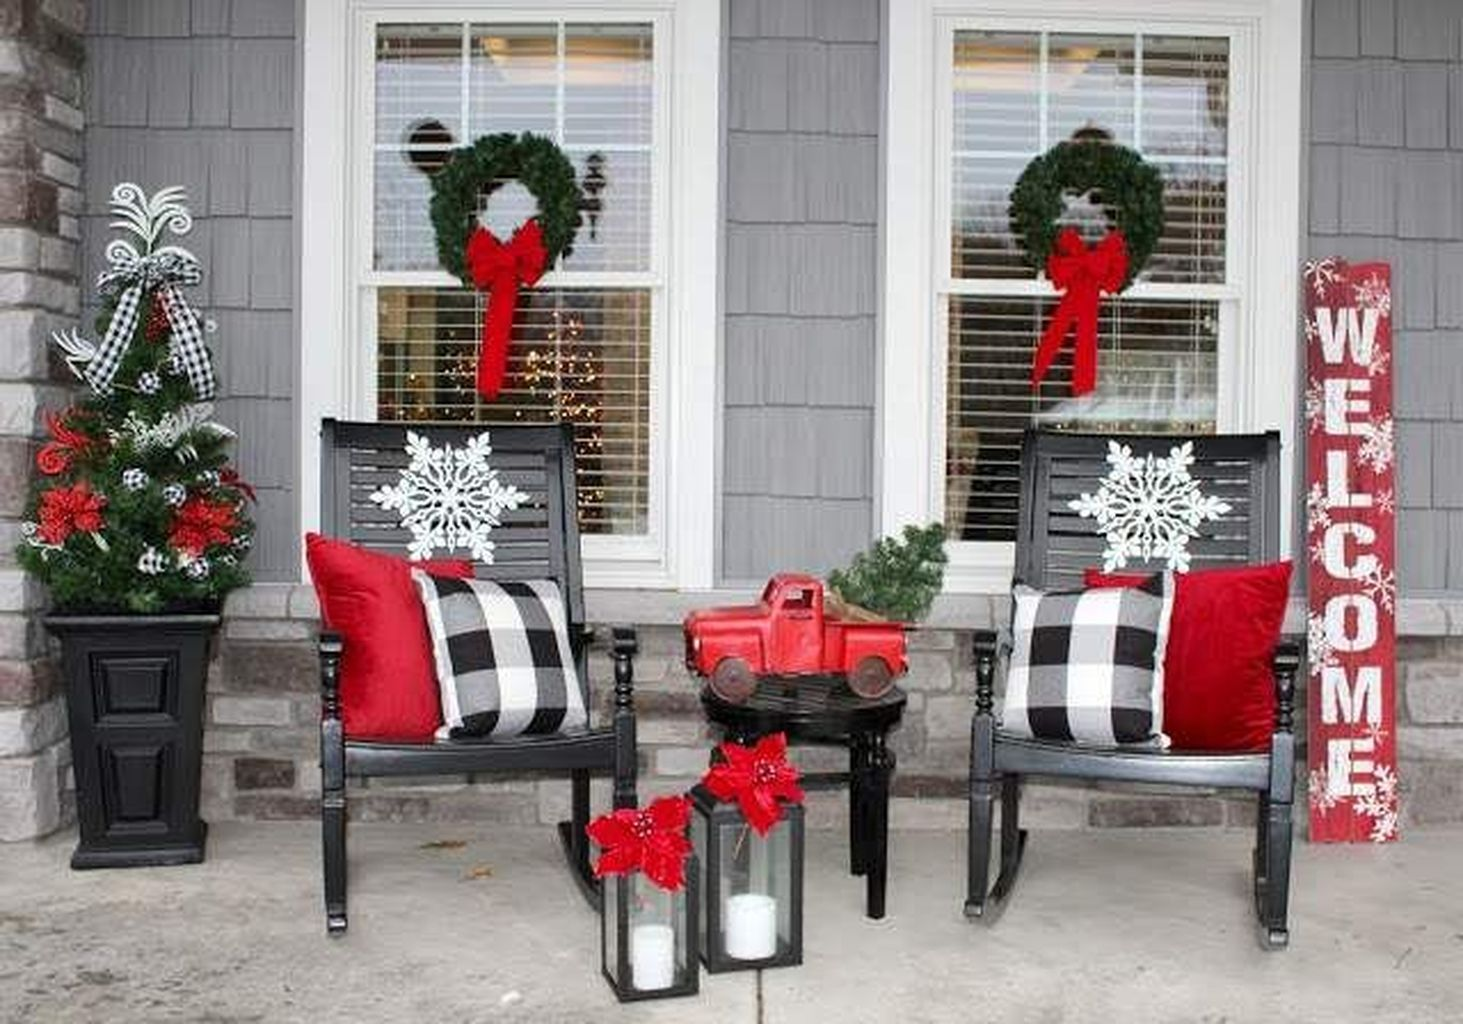 65 Simple Christmas Porch Decorating Ideas In 2020 Front Porch Christmas Decor Christmas Porch Decor Best Outdoor Christmas Decorations